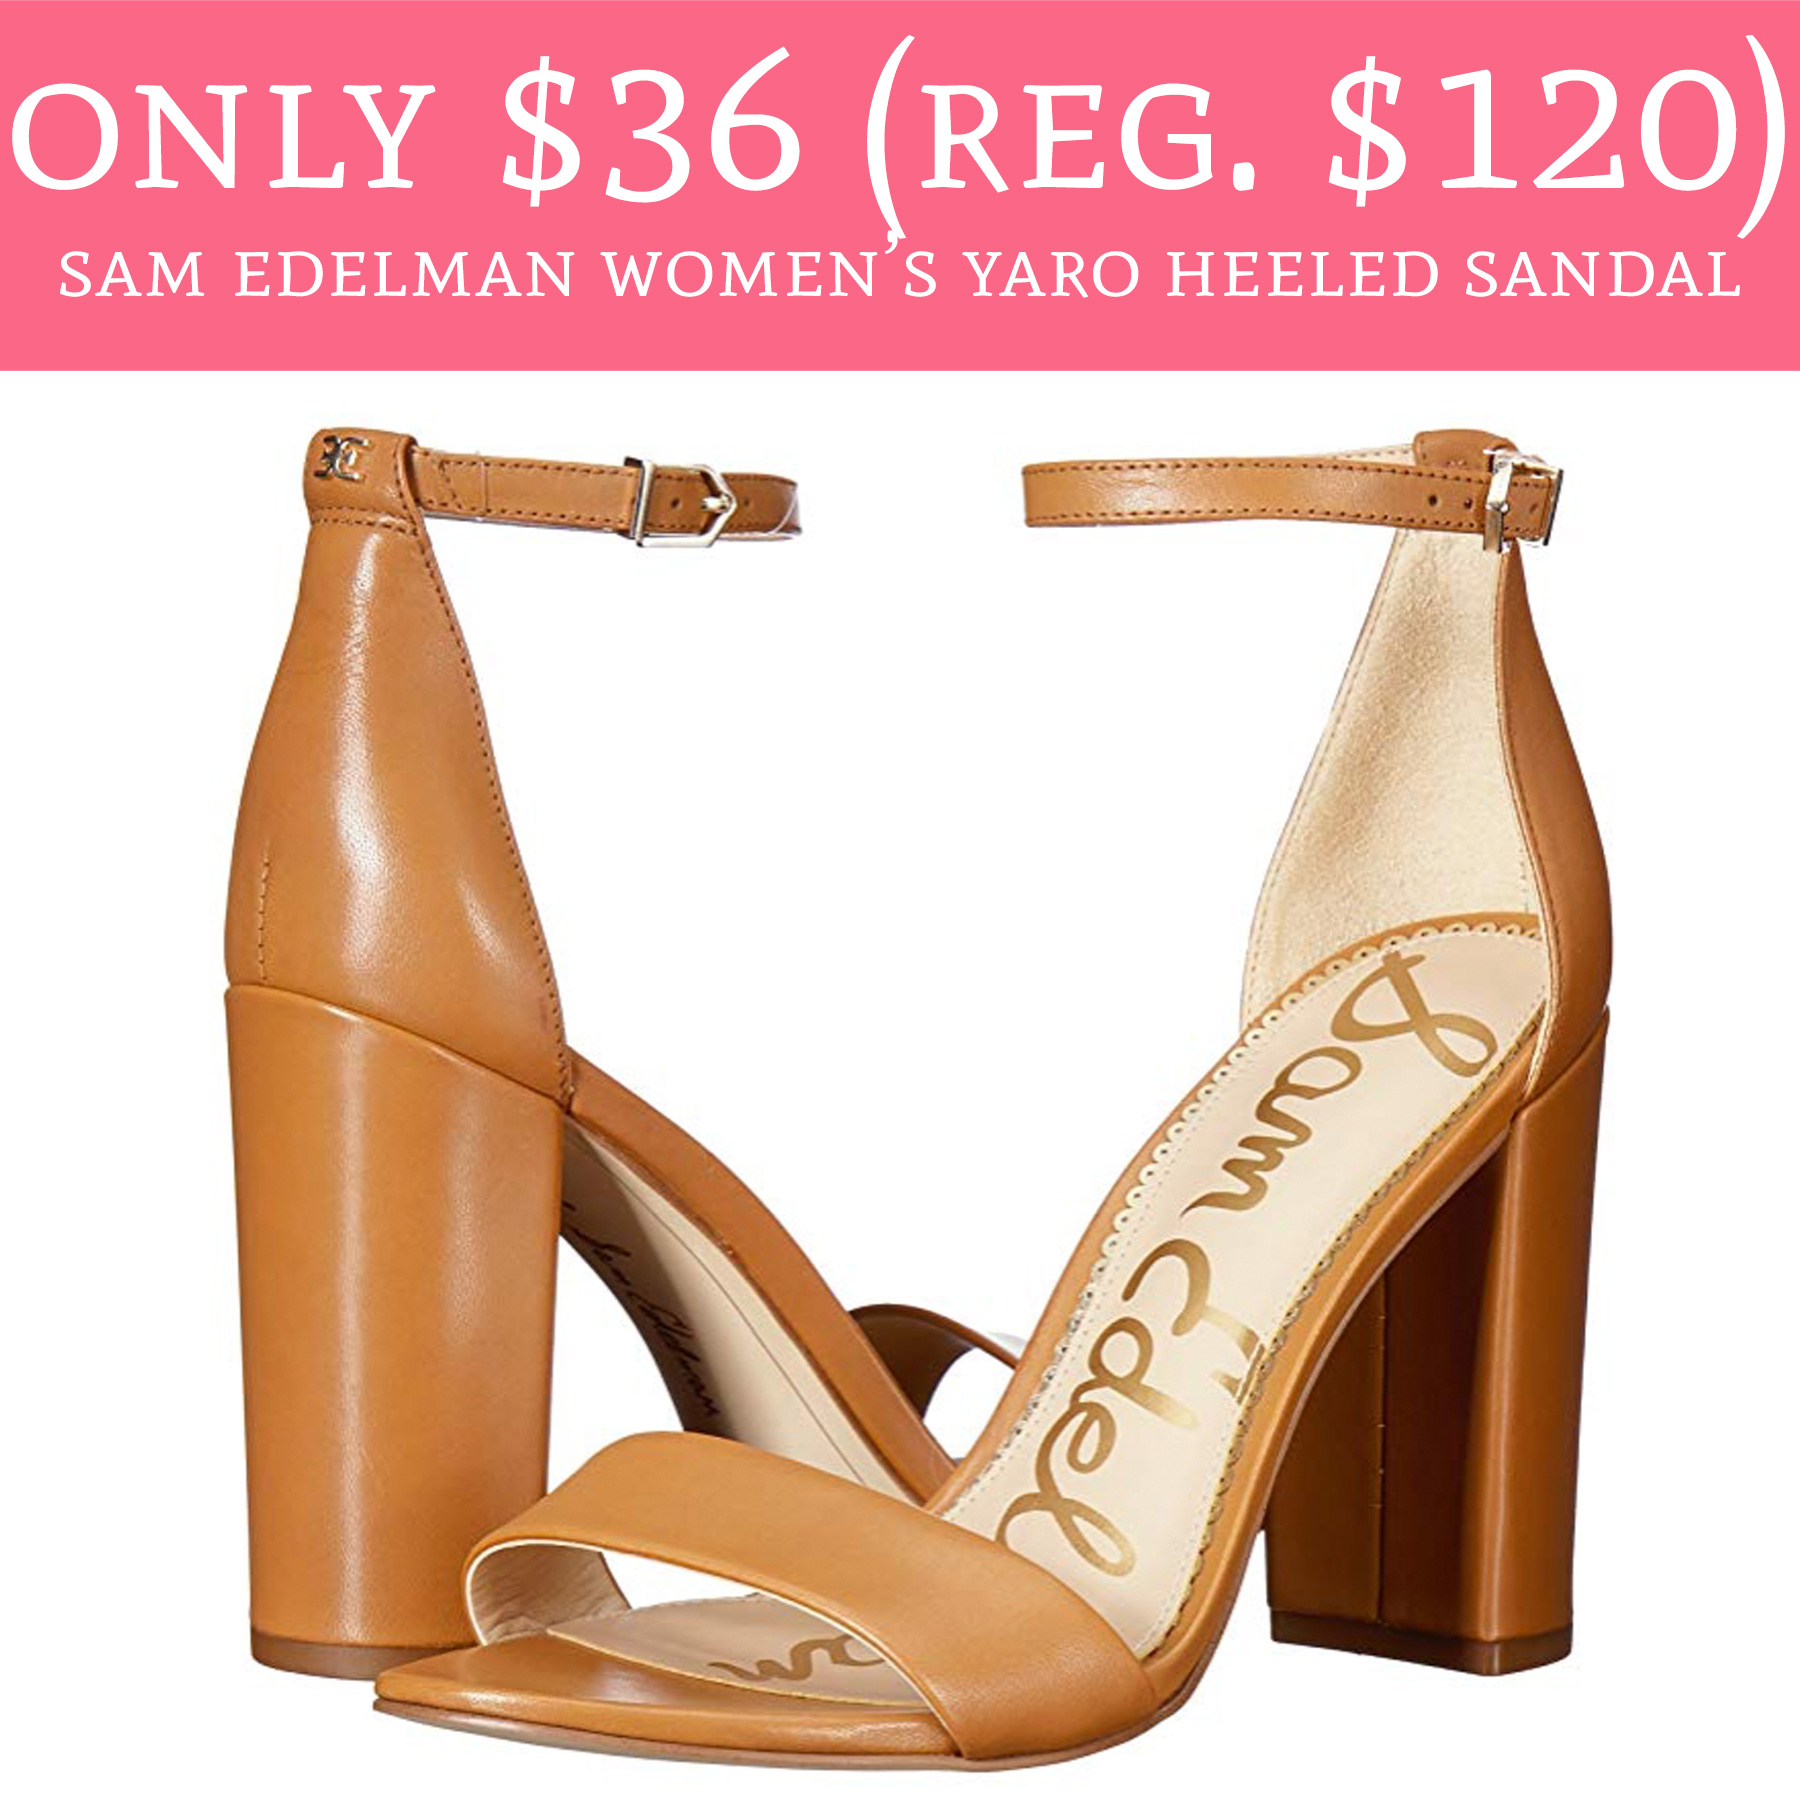 7478ac74ef87 Only  36 (Regular  120) Sam Edelman Women s Yaro Heeled Sandal ...